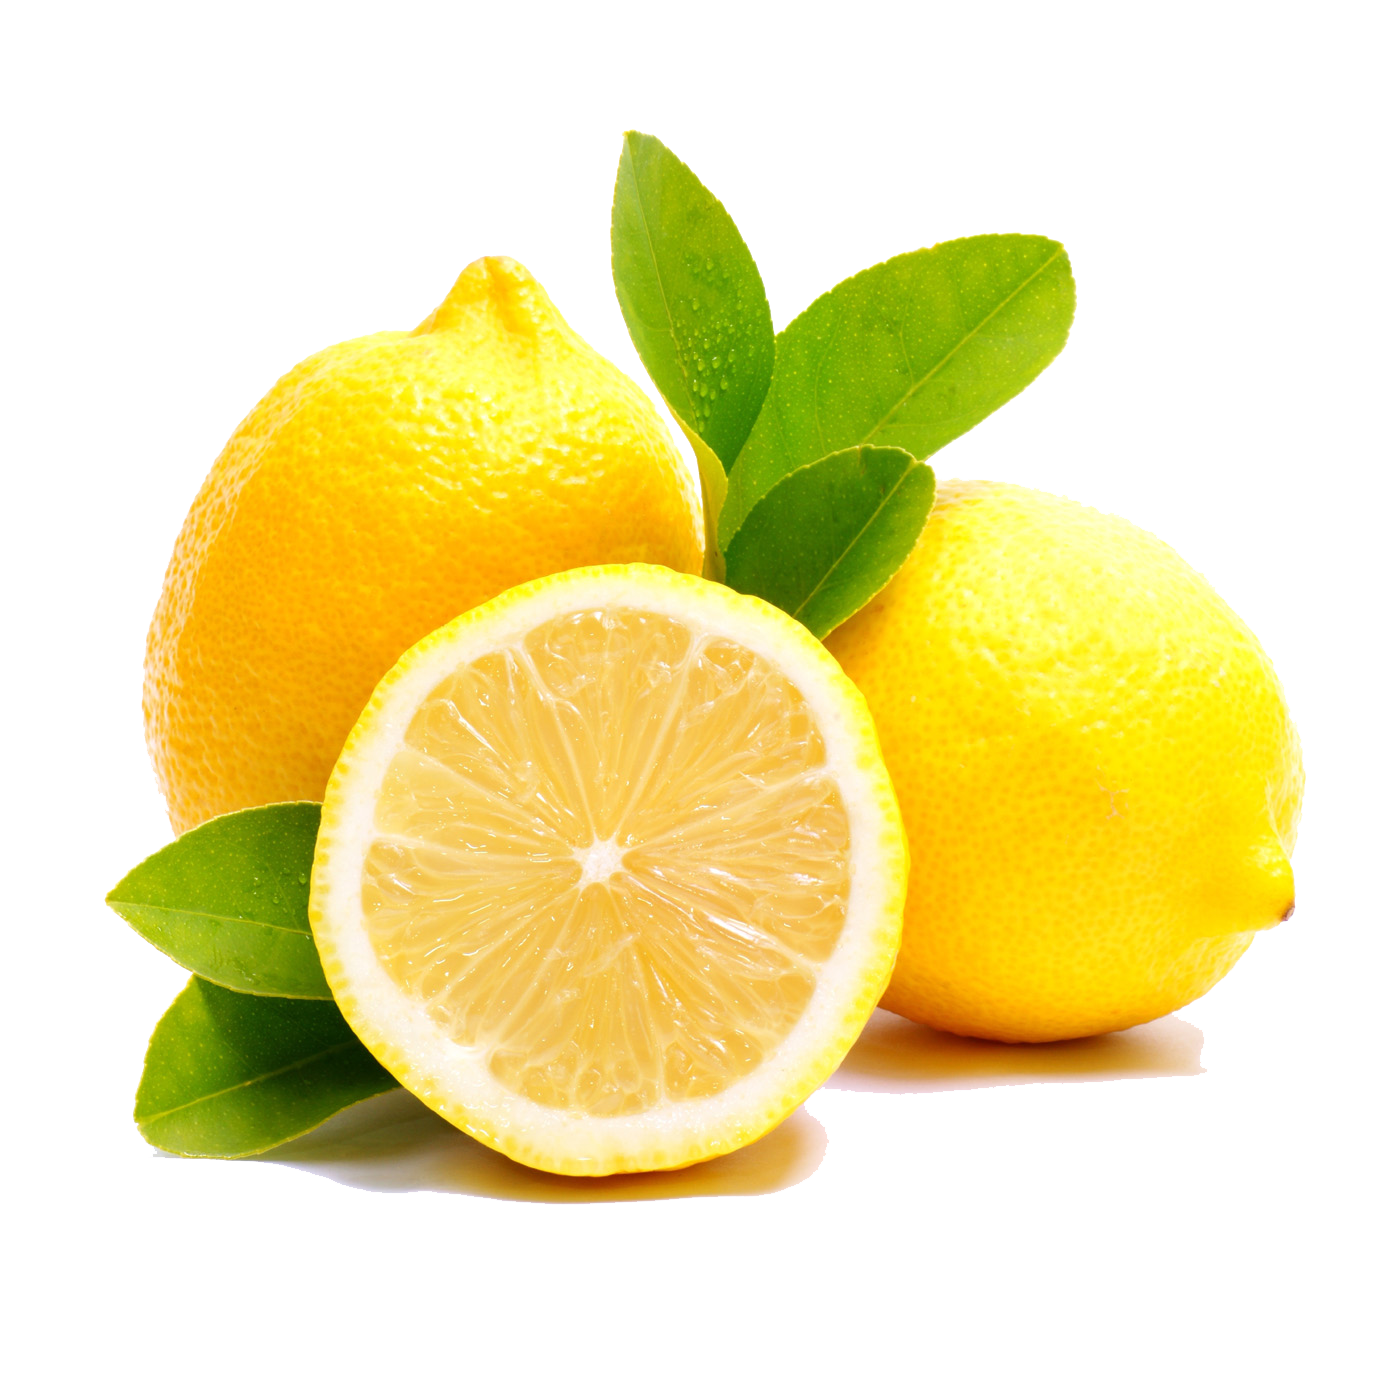 Lemon Transparent Image PNG Image